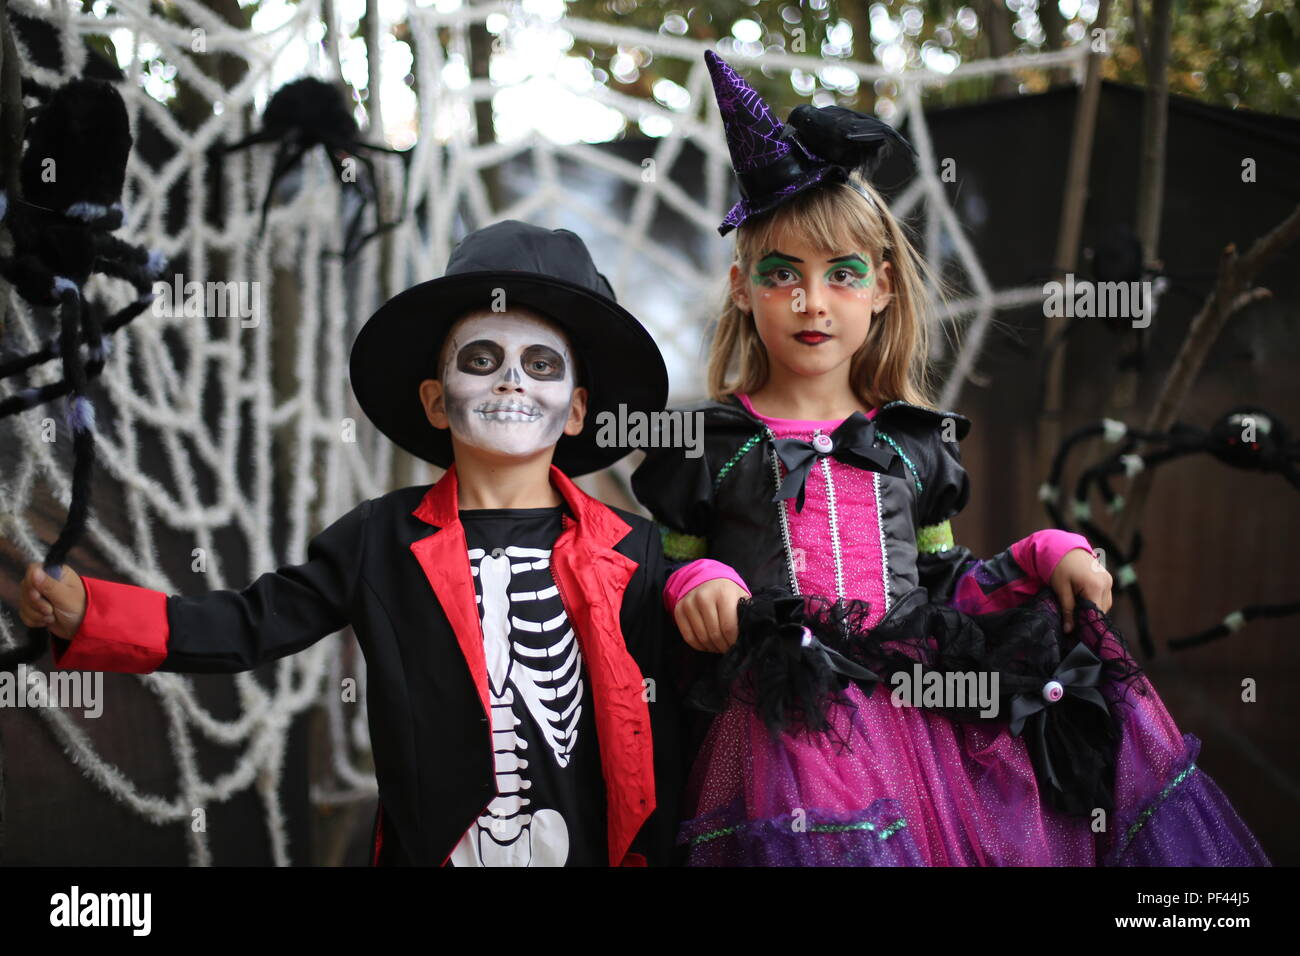 Halloween kids, Trick-or-treat. Kids wears costume of skeleton and witch for Halloween trick-or-treating party - Stock Image